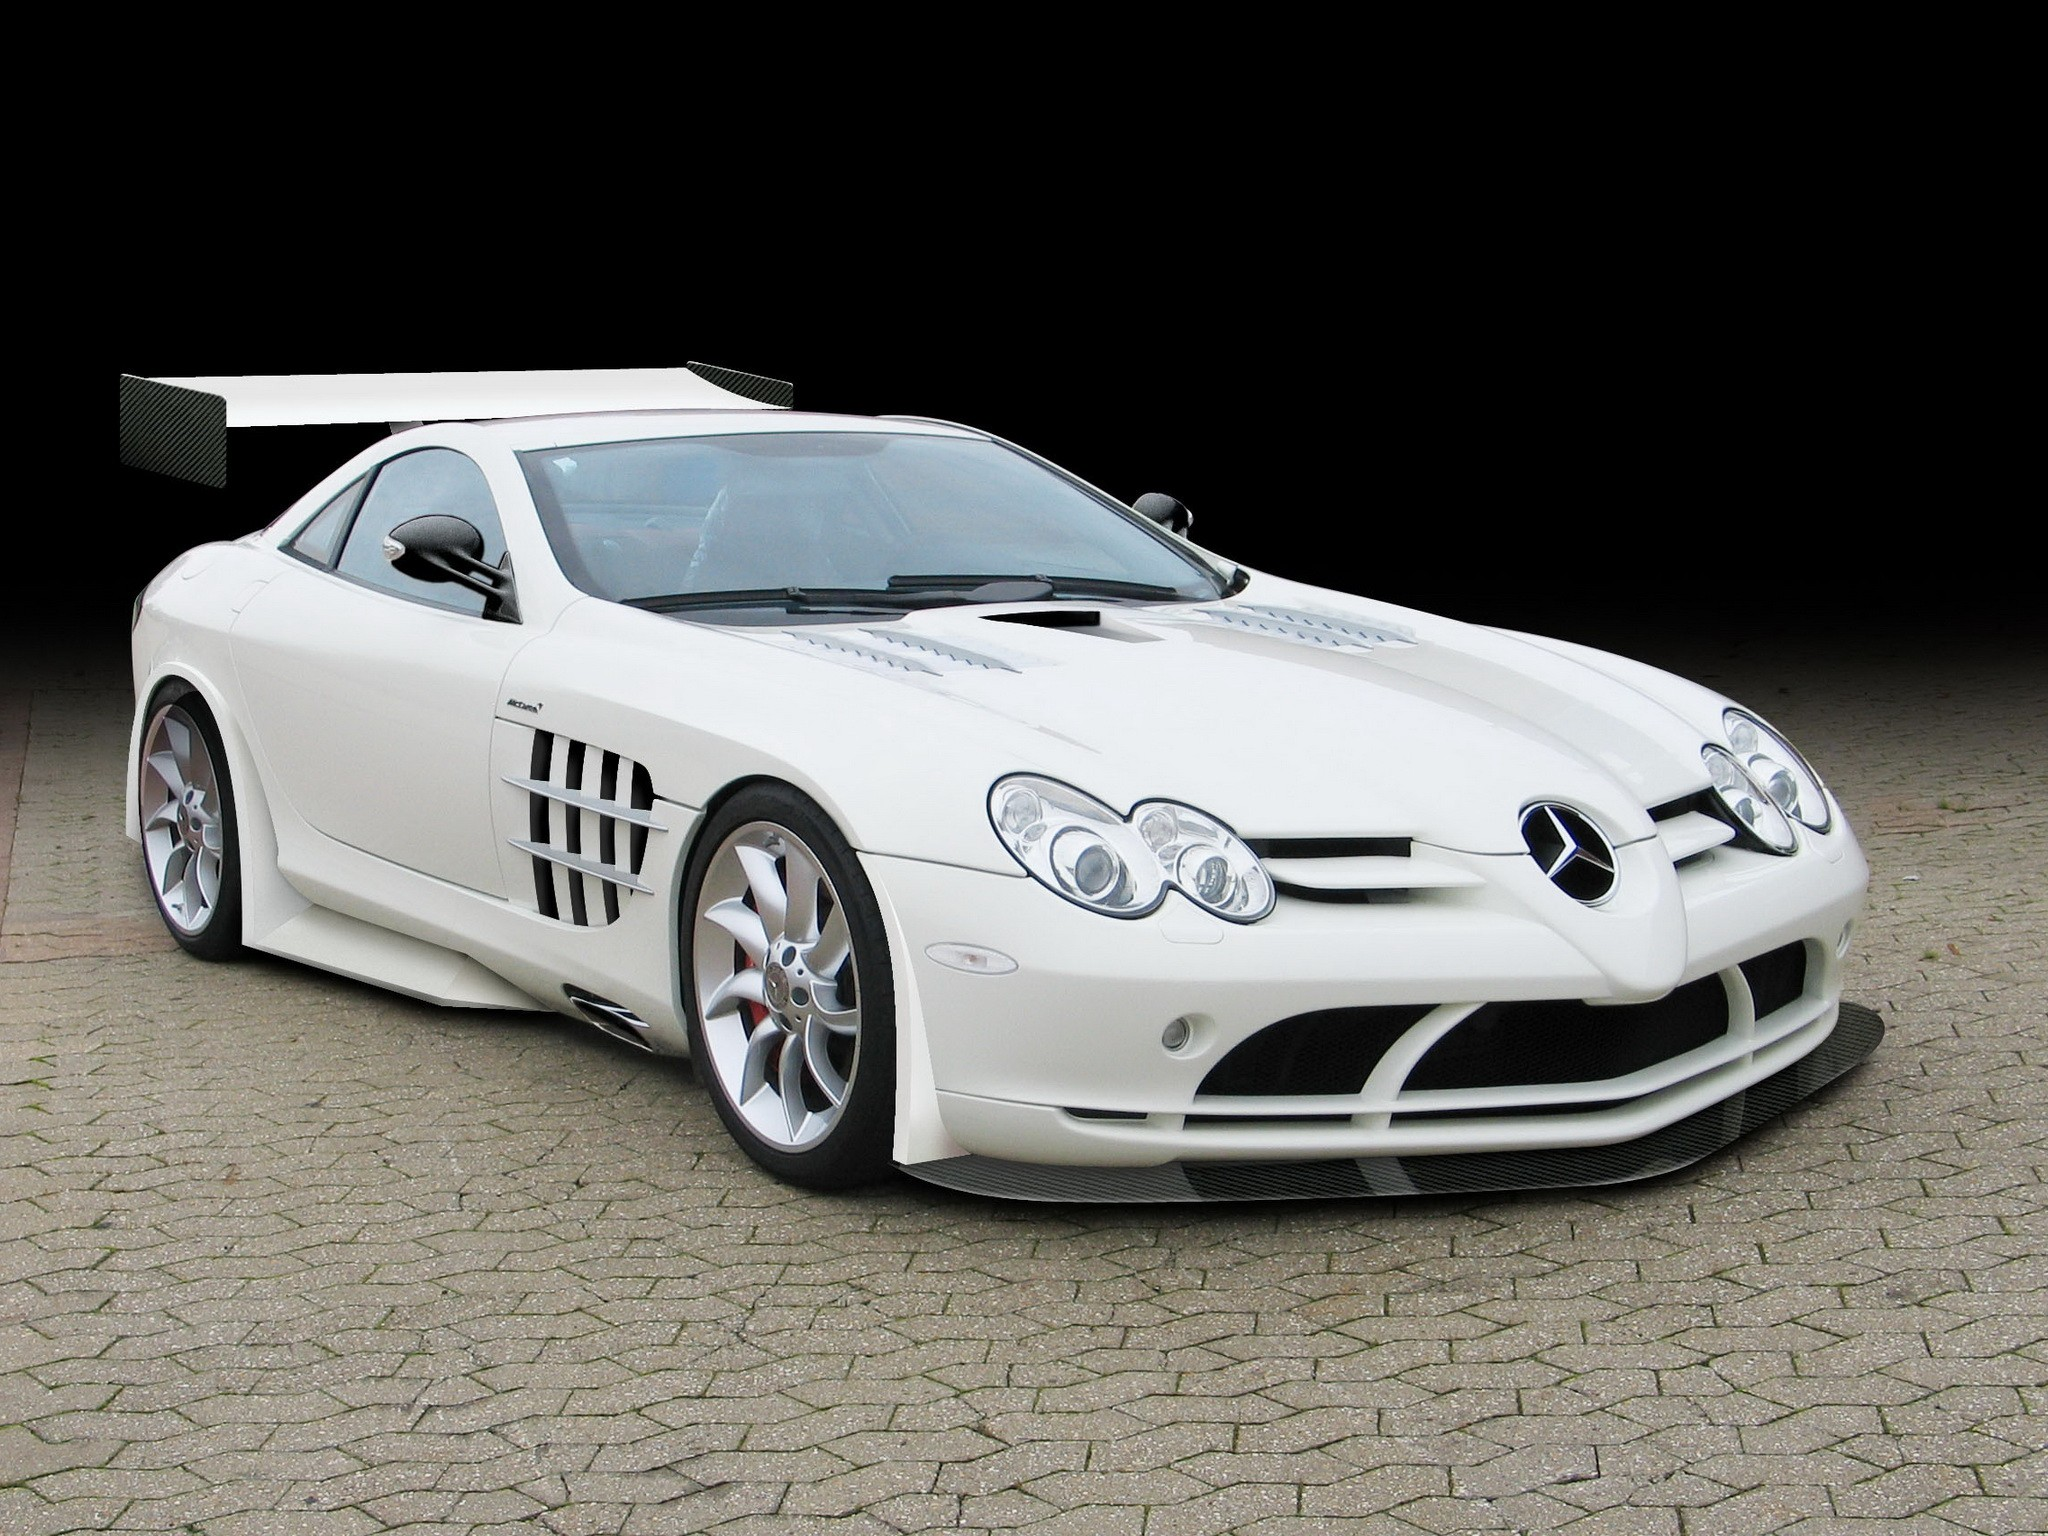 Cars Supercars Wallpaper 2048x1536 Cars Supercars Mercedes Benz 2048x1536